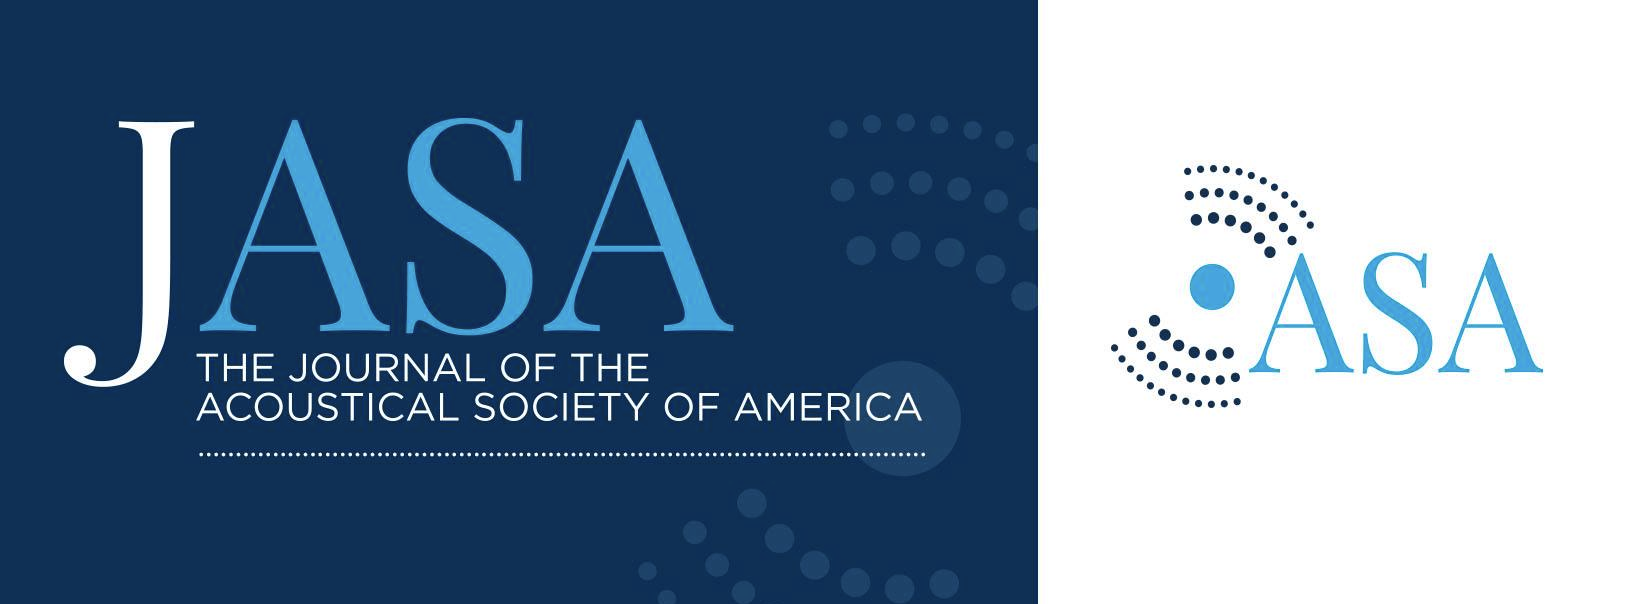 The Journal of the Acoustical Society of America  cover